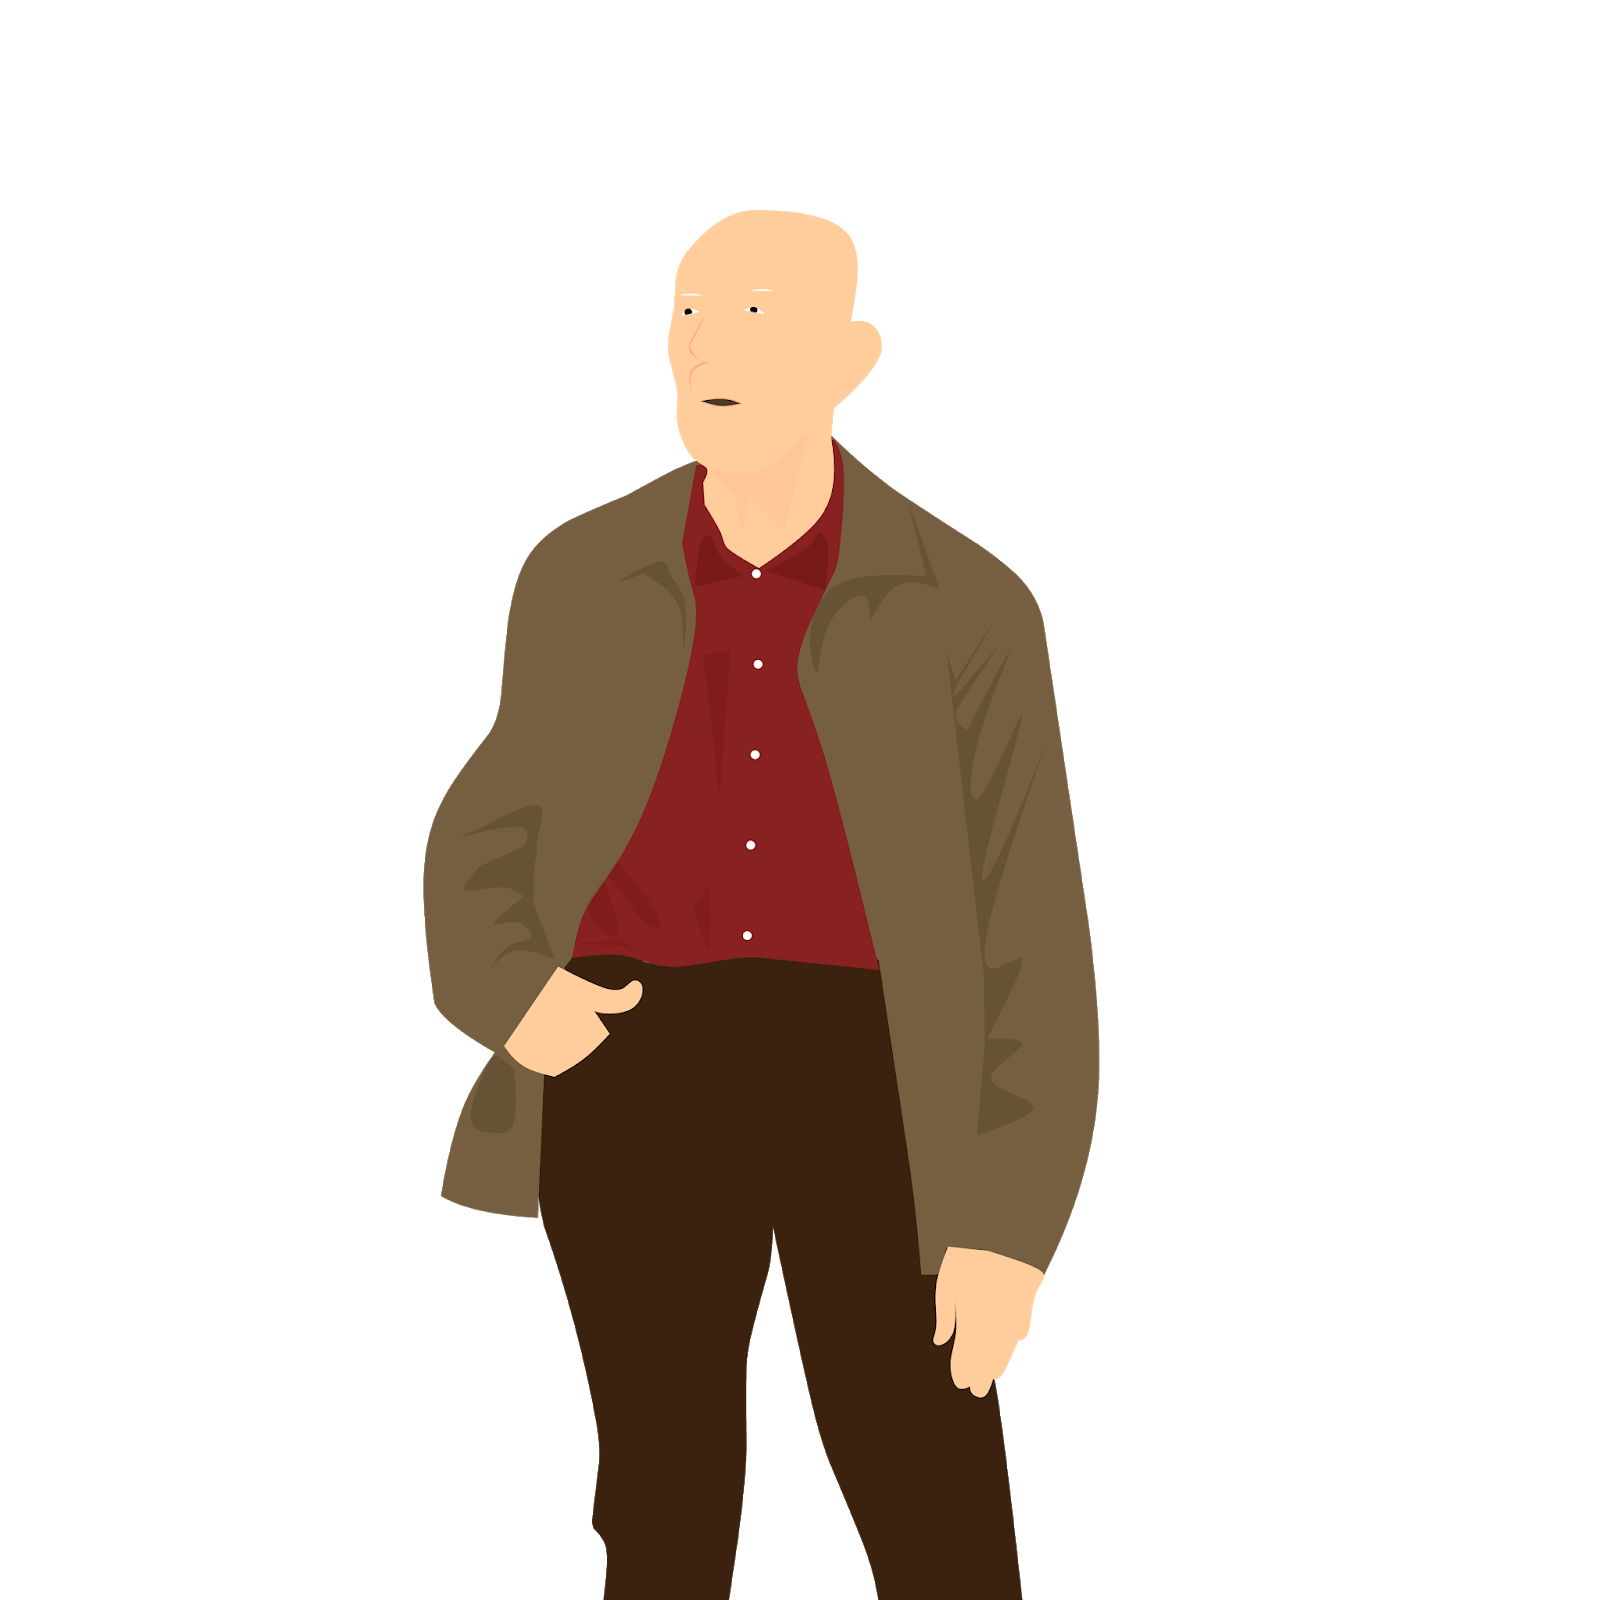 illustrations of elderly old person retired